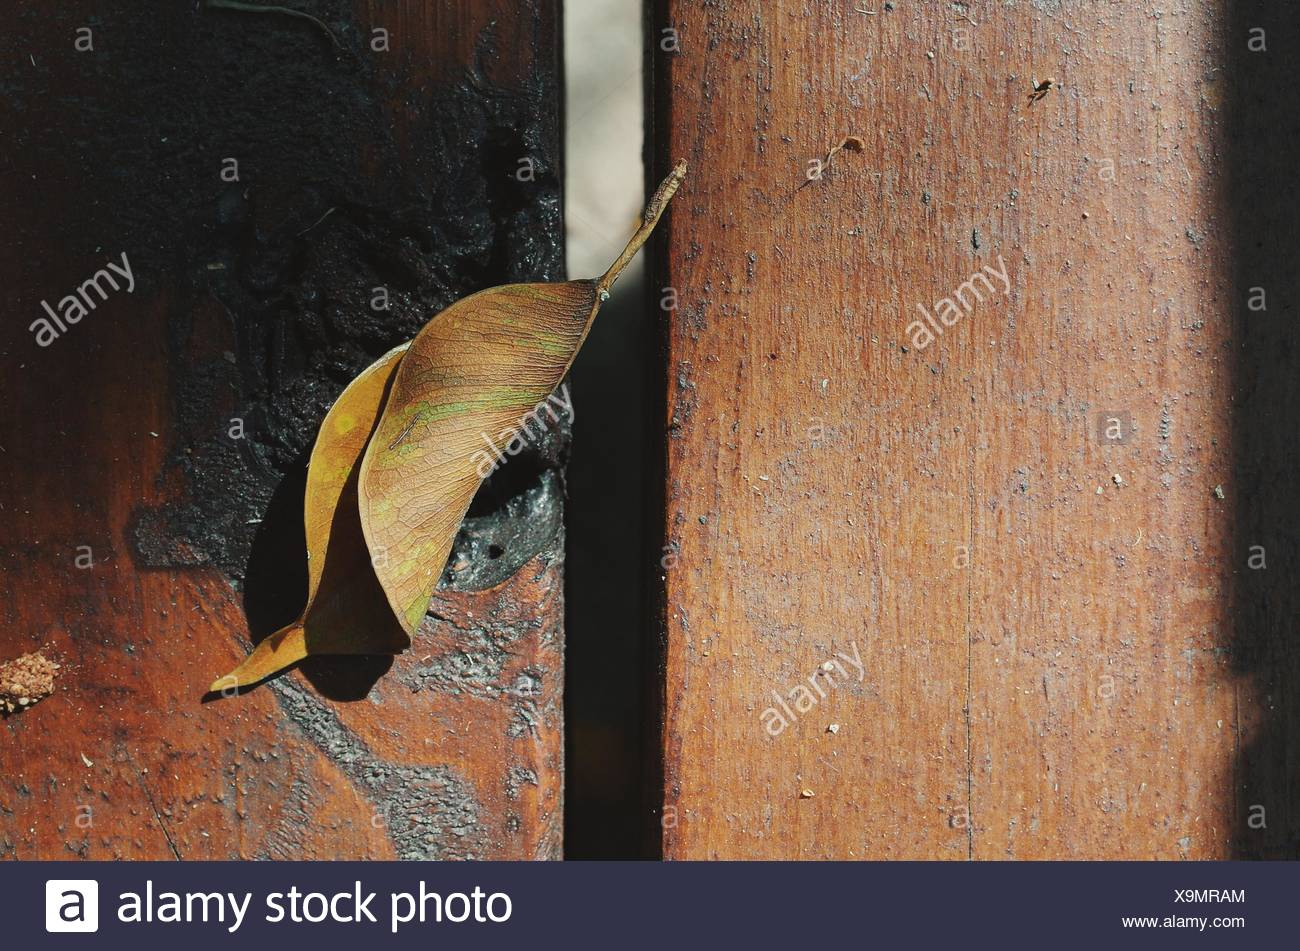 Close-Up Of Dry Leaf On Wooden Surface - Stock Image